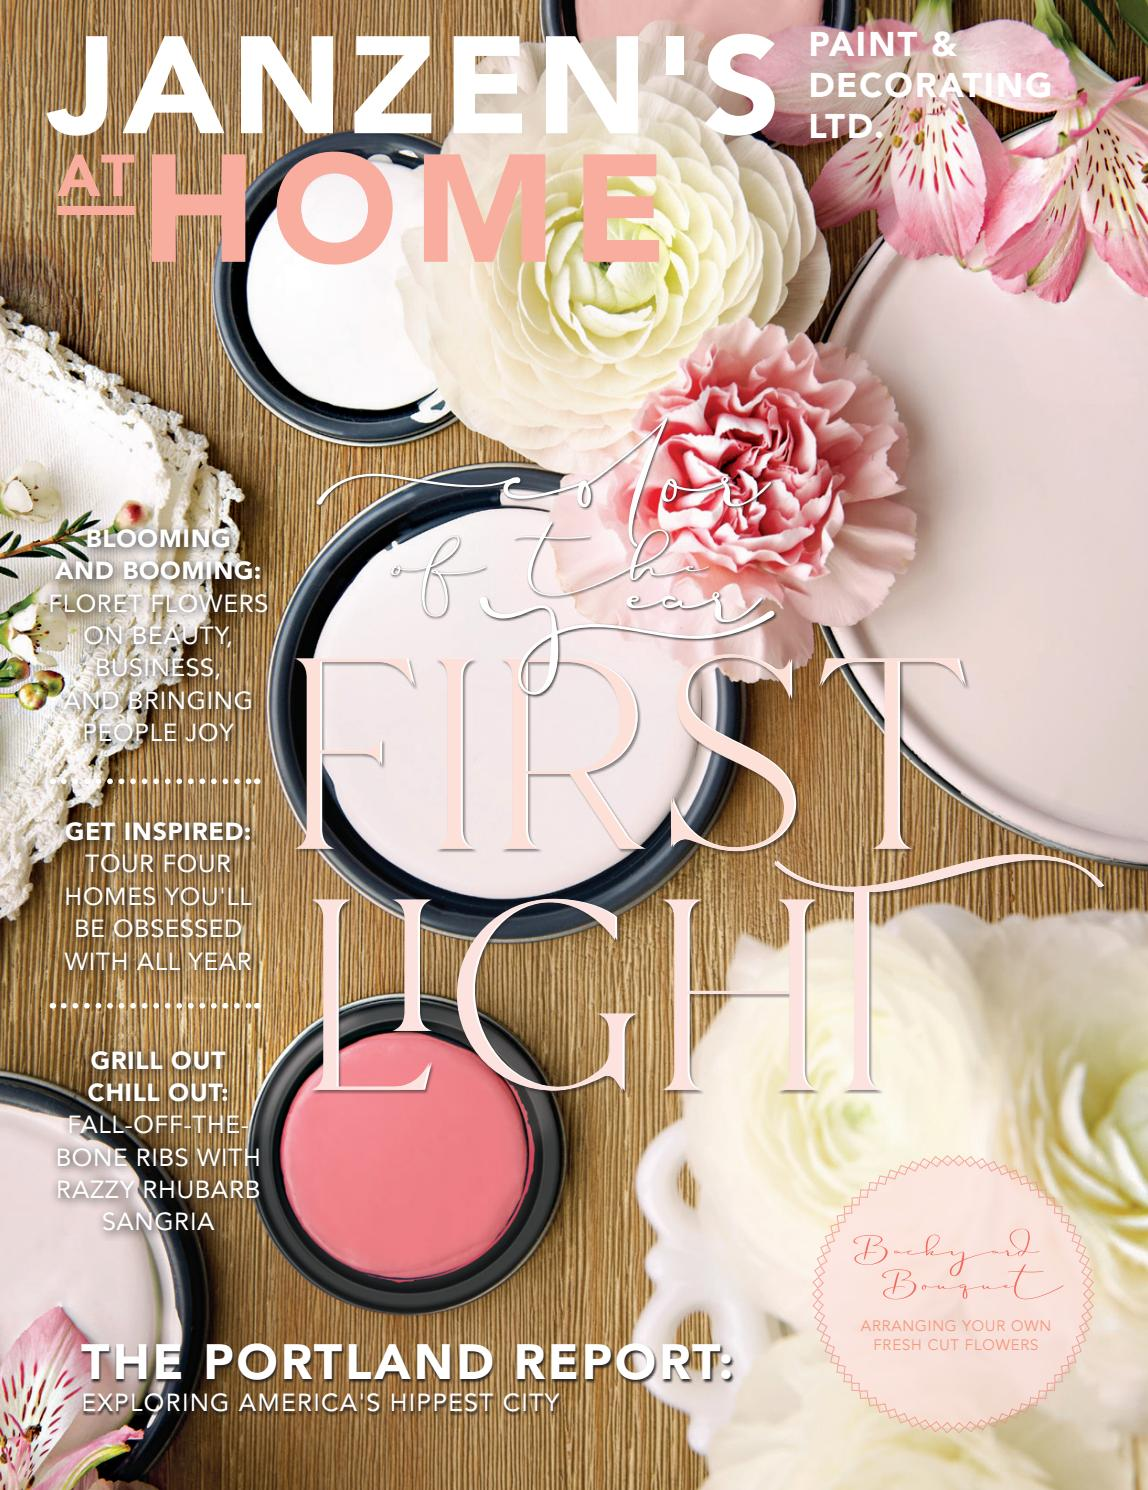 Janzen S Paint Decorating Ltd At Home Spring 2020 By At Home Magazine Issuu